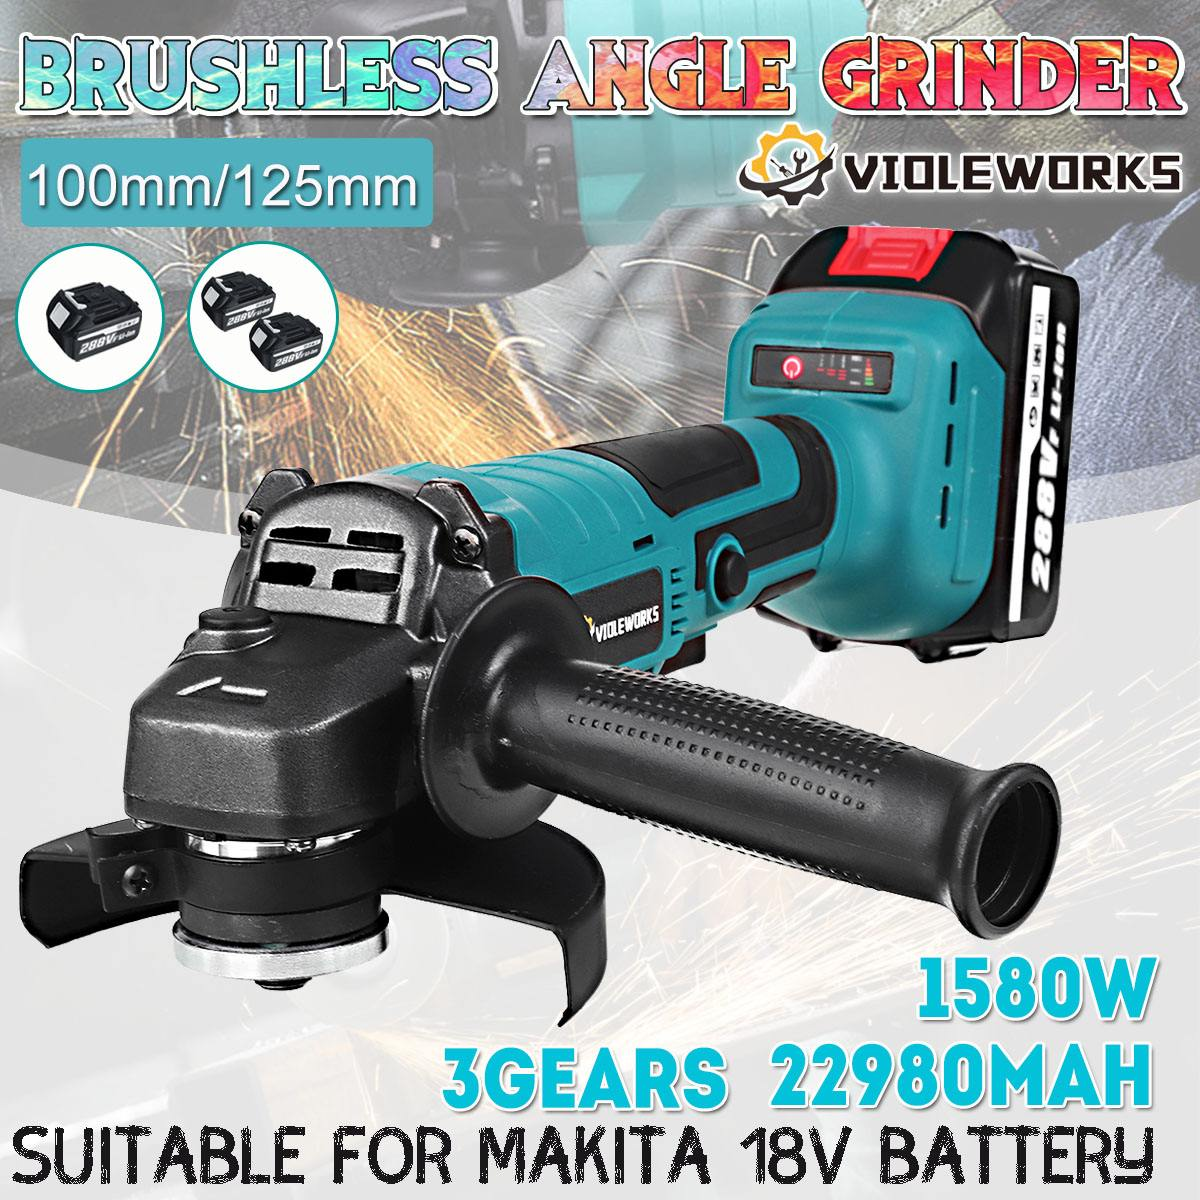 288VF 100mm/125mm Brushless Angle Grinder Li Battery Cordless Angle Grinder Machine Electric Power Tools For Polishing Cutting